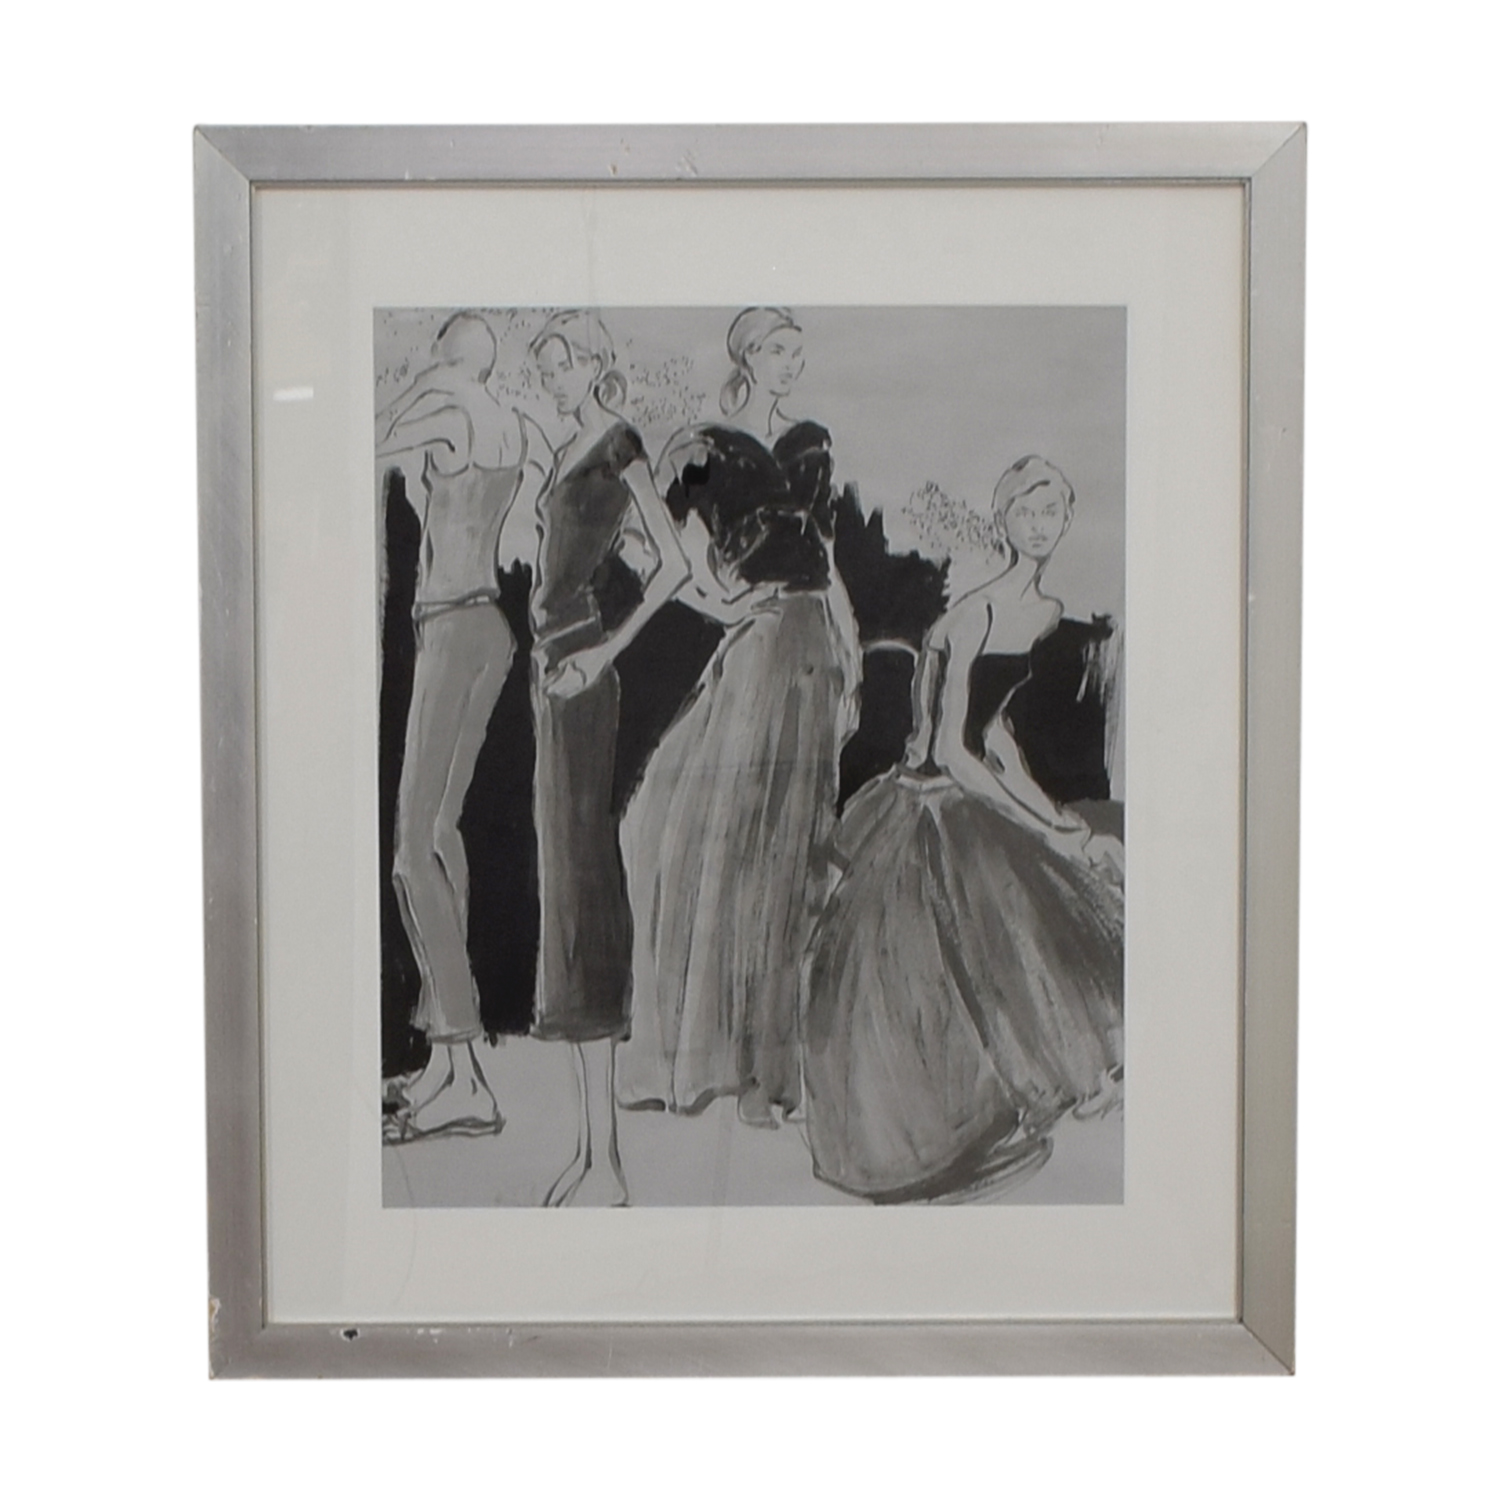 Black and White Fashion Sketch Framed Art discount